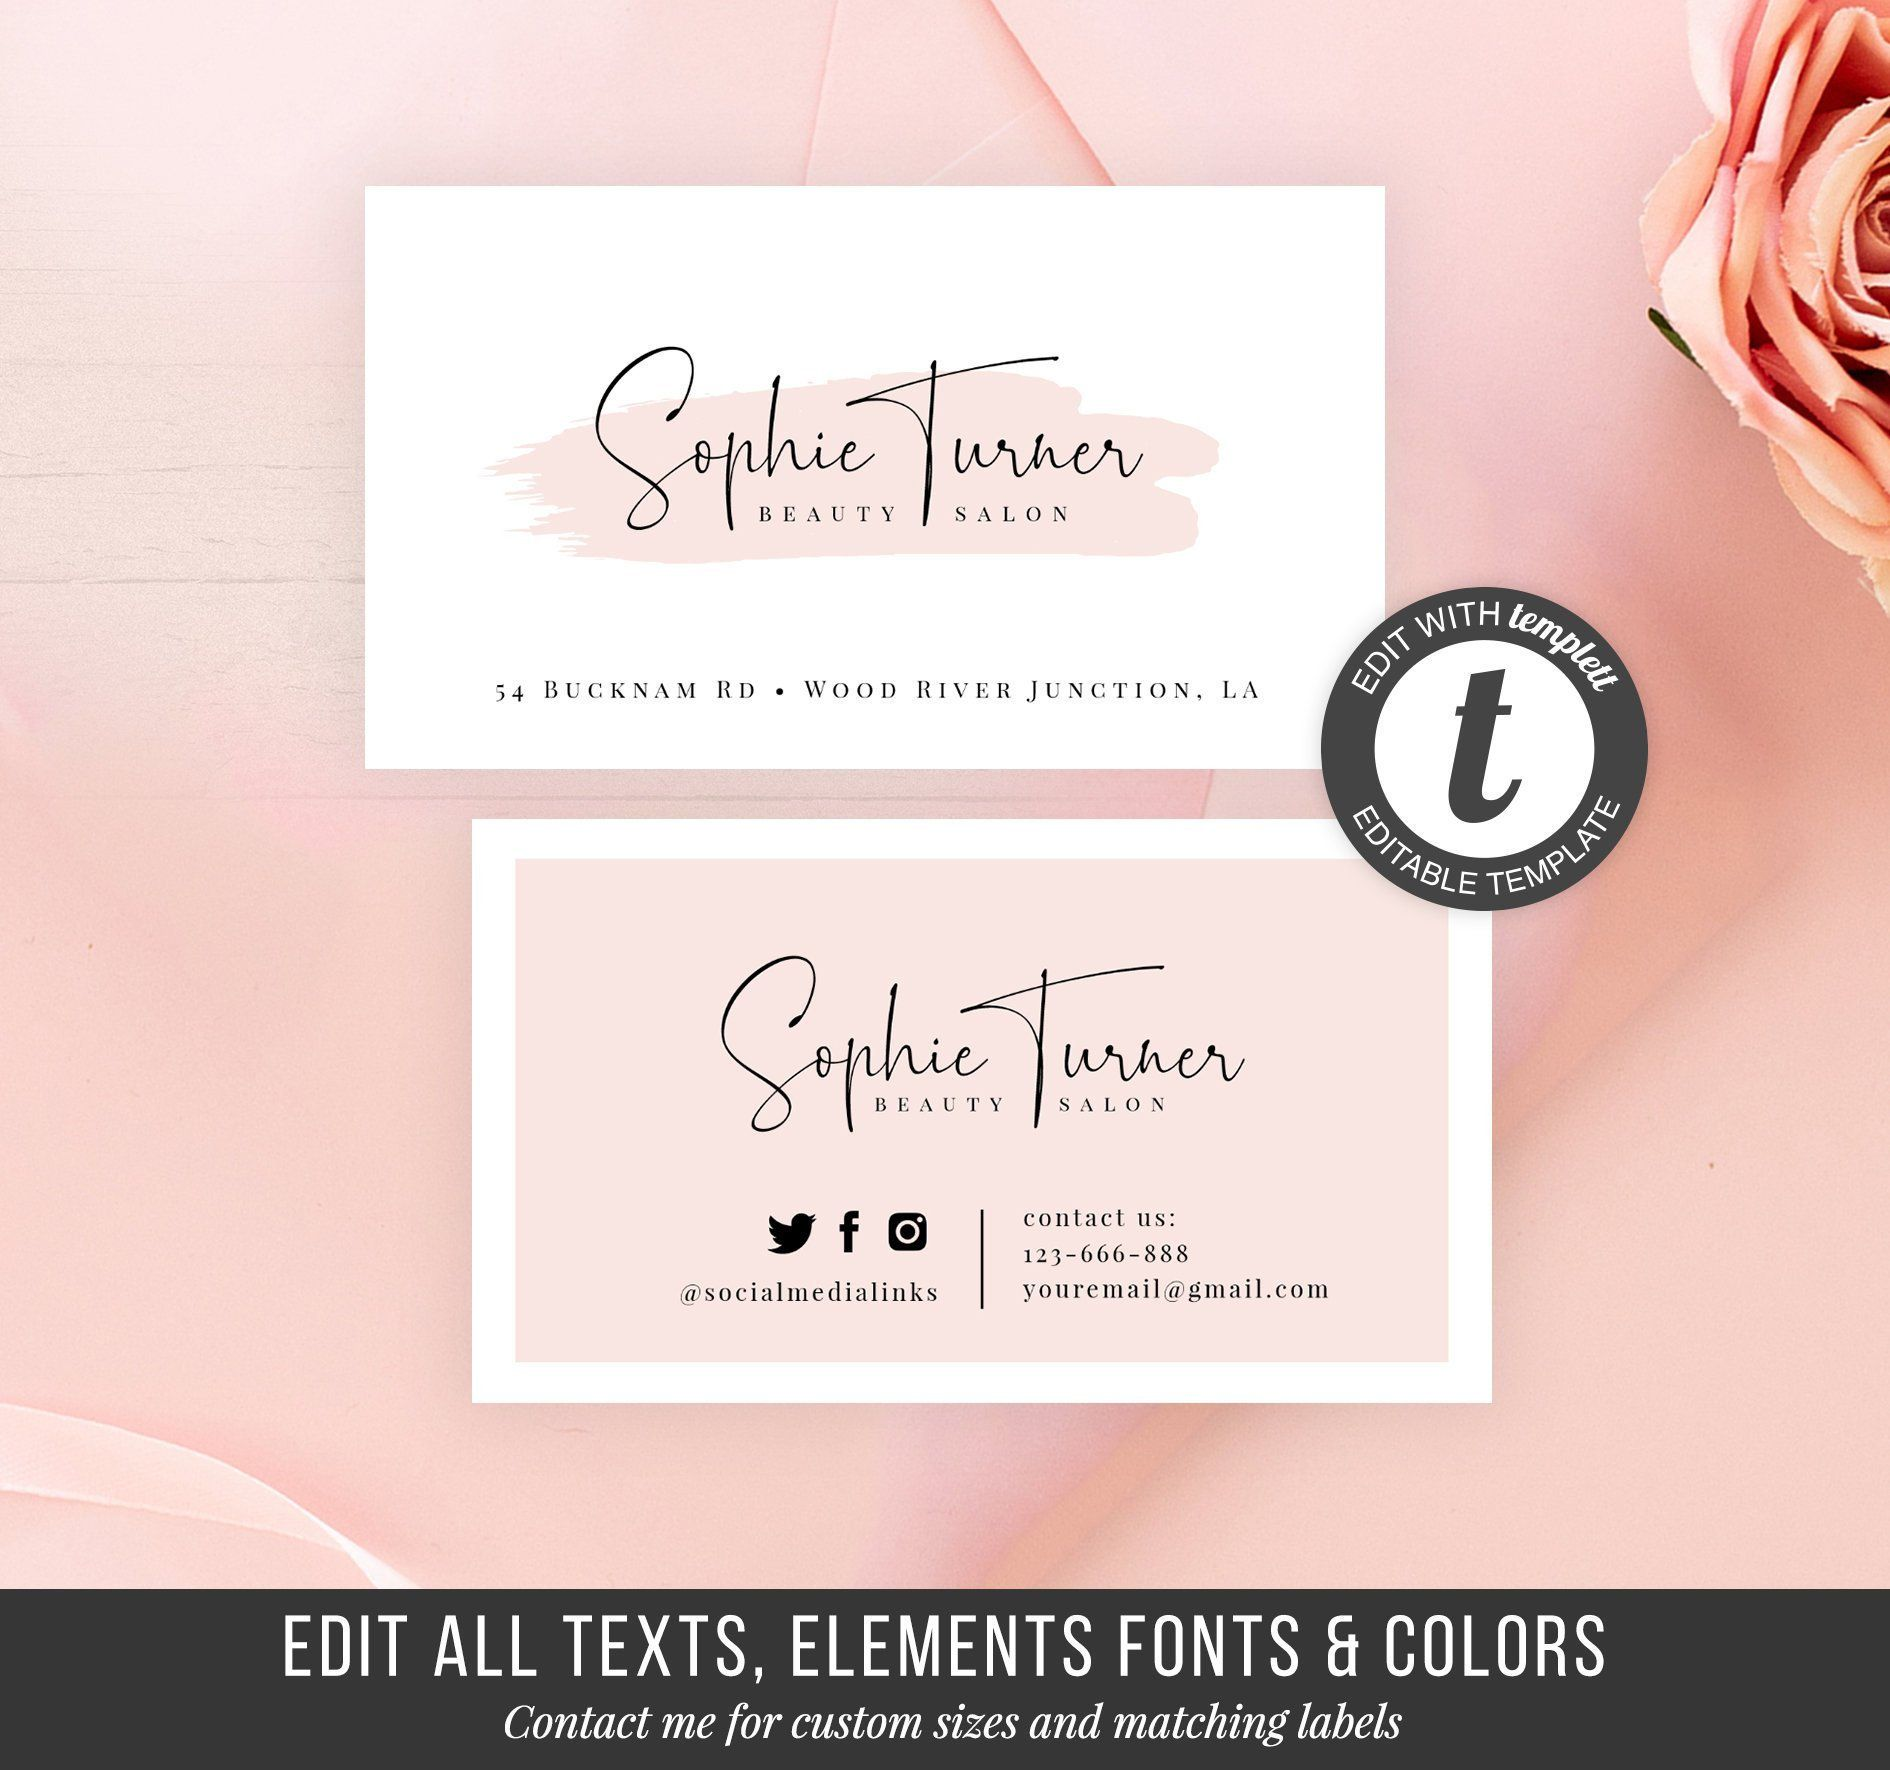 Printable Business Card Template Diy Business Card Instant Beauty Business Card Online Store Cards Calling Cards Business Stationery Printable Business Cards Diy Business Cards Card Template